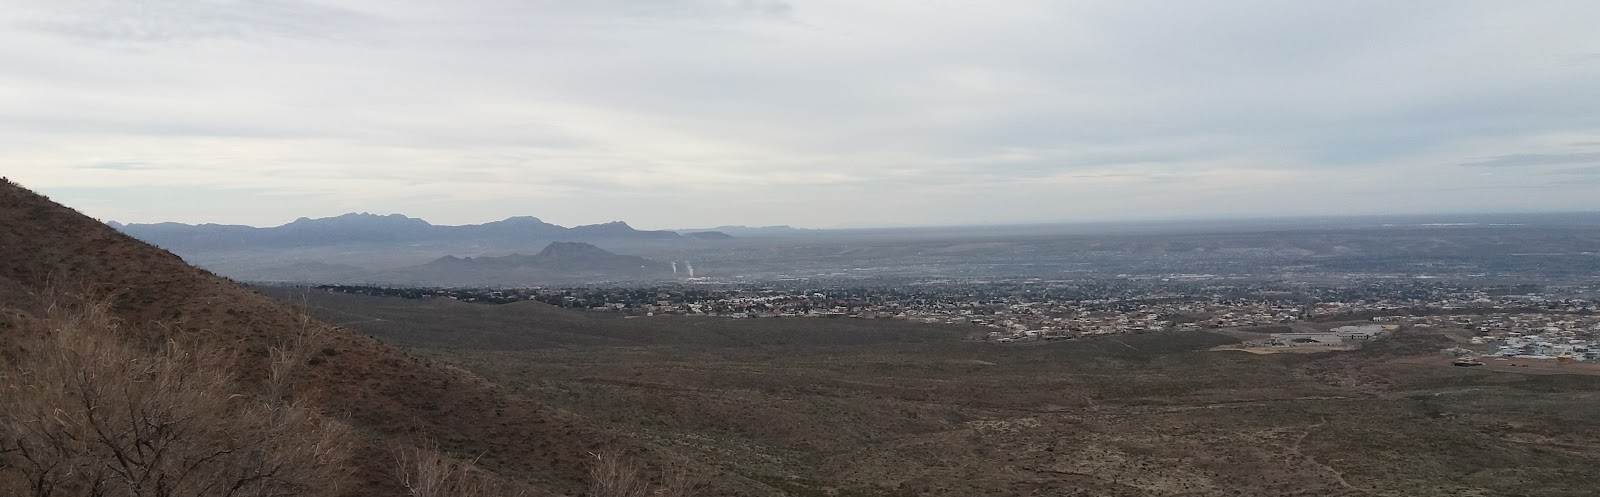 Cycling Smugglers Pass - Transmountain Drive - view of El Paso